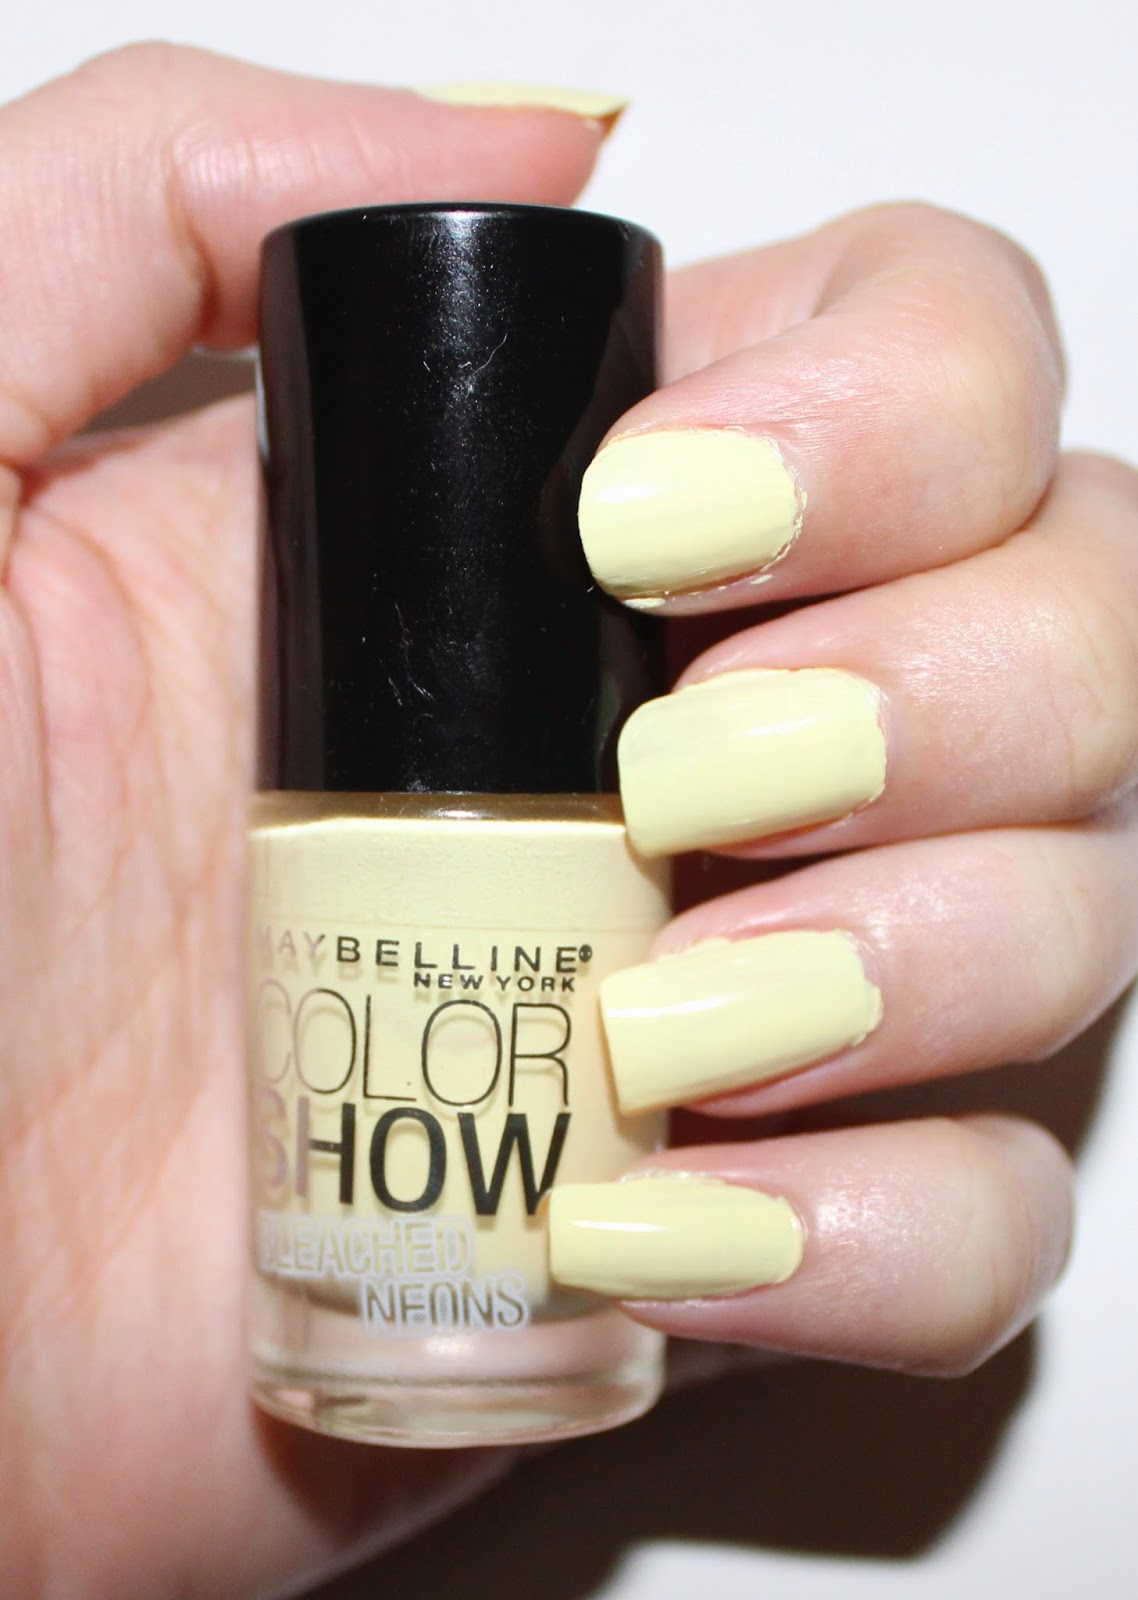 Maybelline Bleached Neons Citrus Collide Nail Polish Swatch